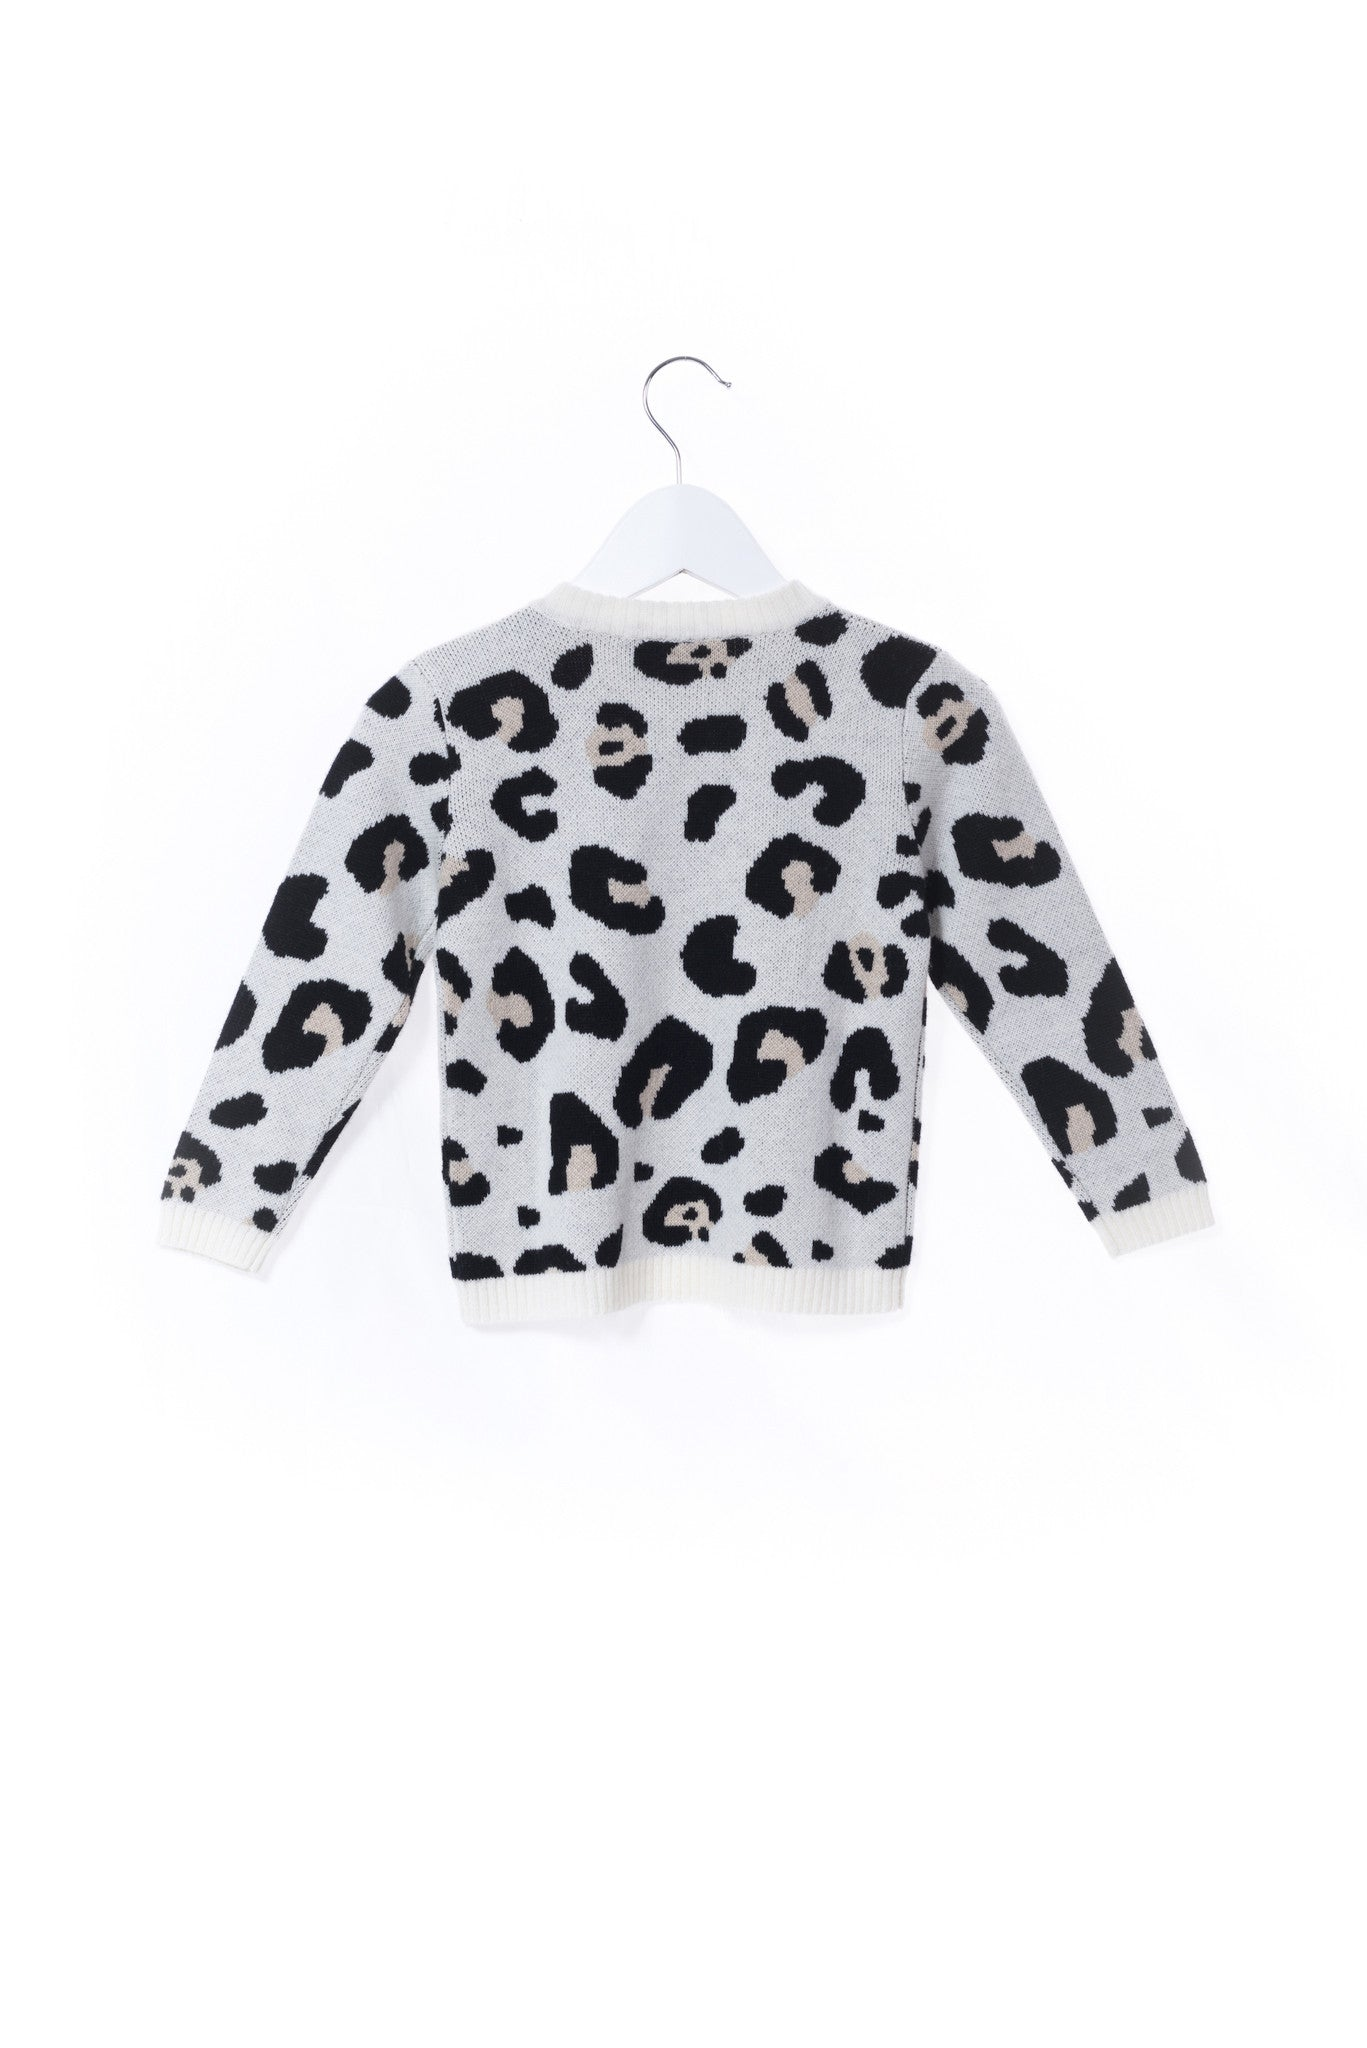 10001010~Sweater 3T, Atelier Child at Retykle - Online Baby & Kids Clothing Up to 90% Off